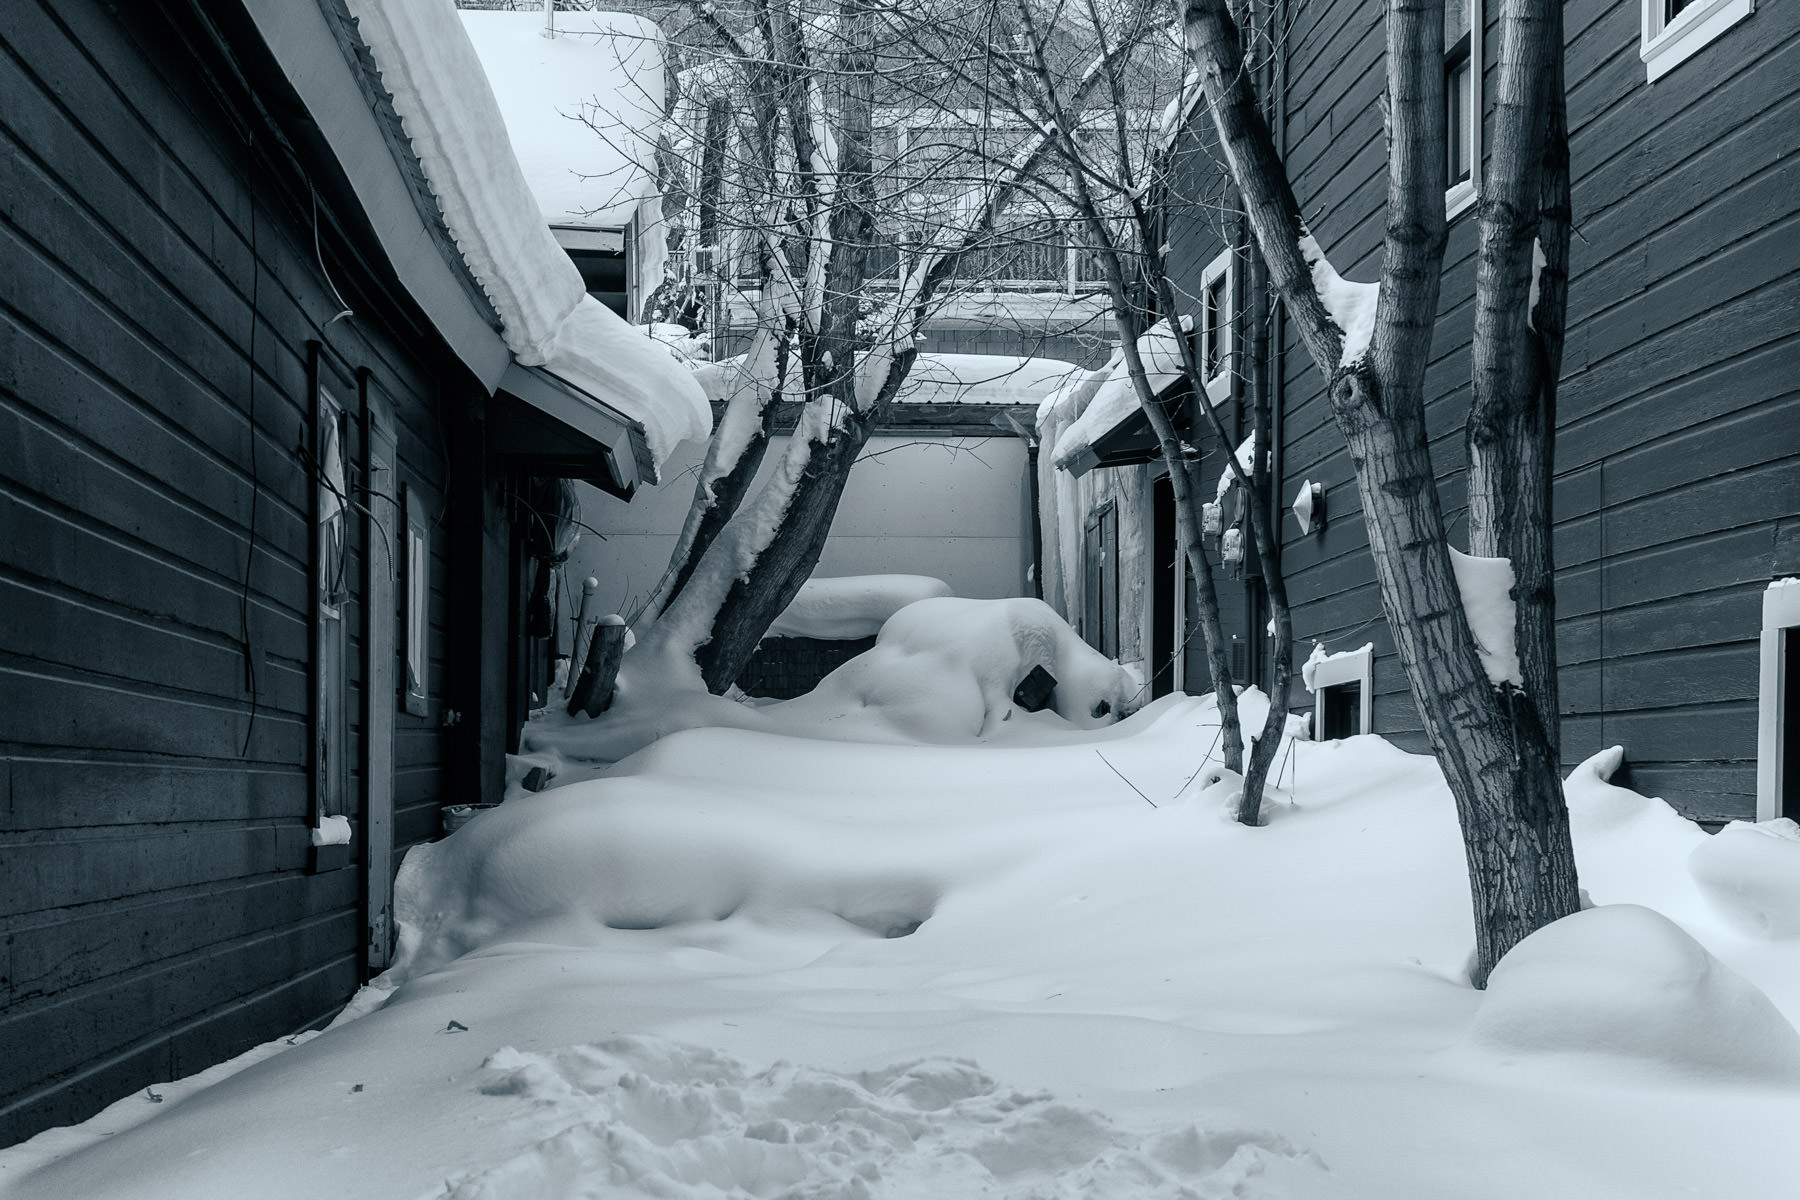 Snow fills the spaces between houses in Park City, Utah.